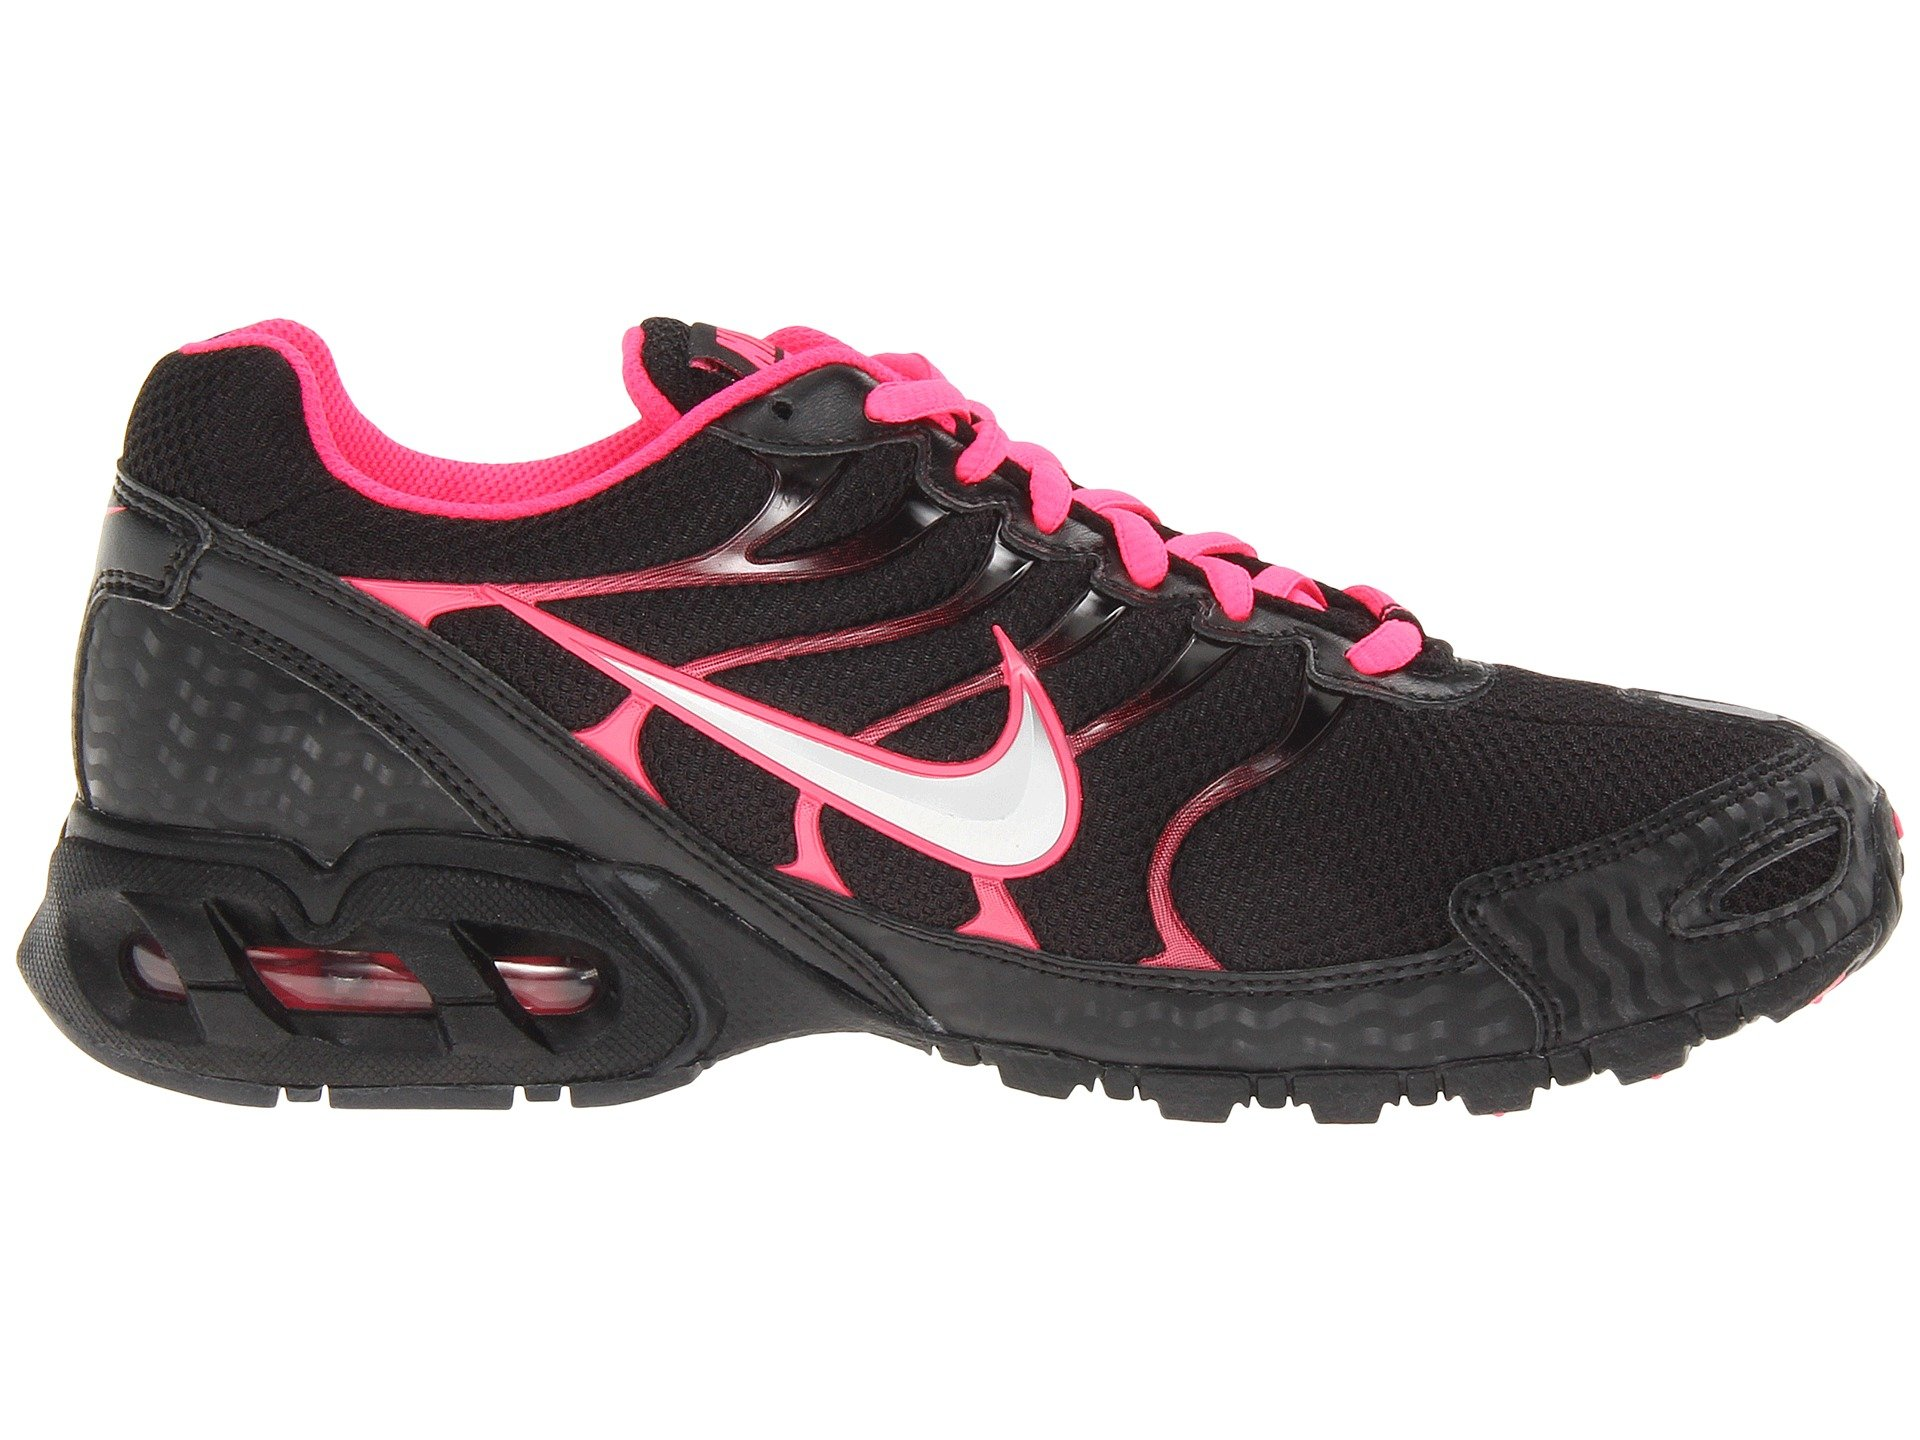 competitive price 97f97 d19cc Nike Women s Air Max Torch 4 Running Shoes (7.5 B(M) US, Black Volt Pink) -  343851-006   Road Running   Clothing, Shoes   Jewelry - tibs